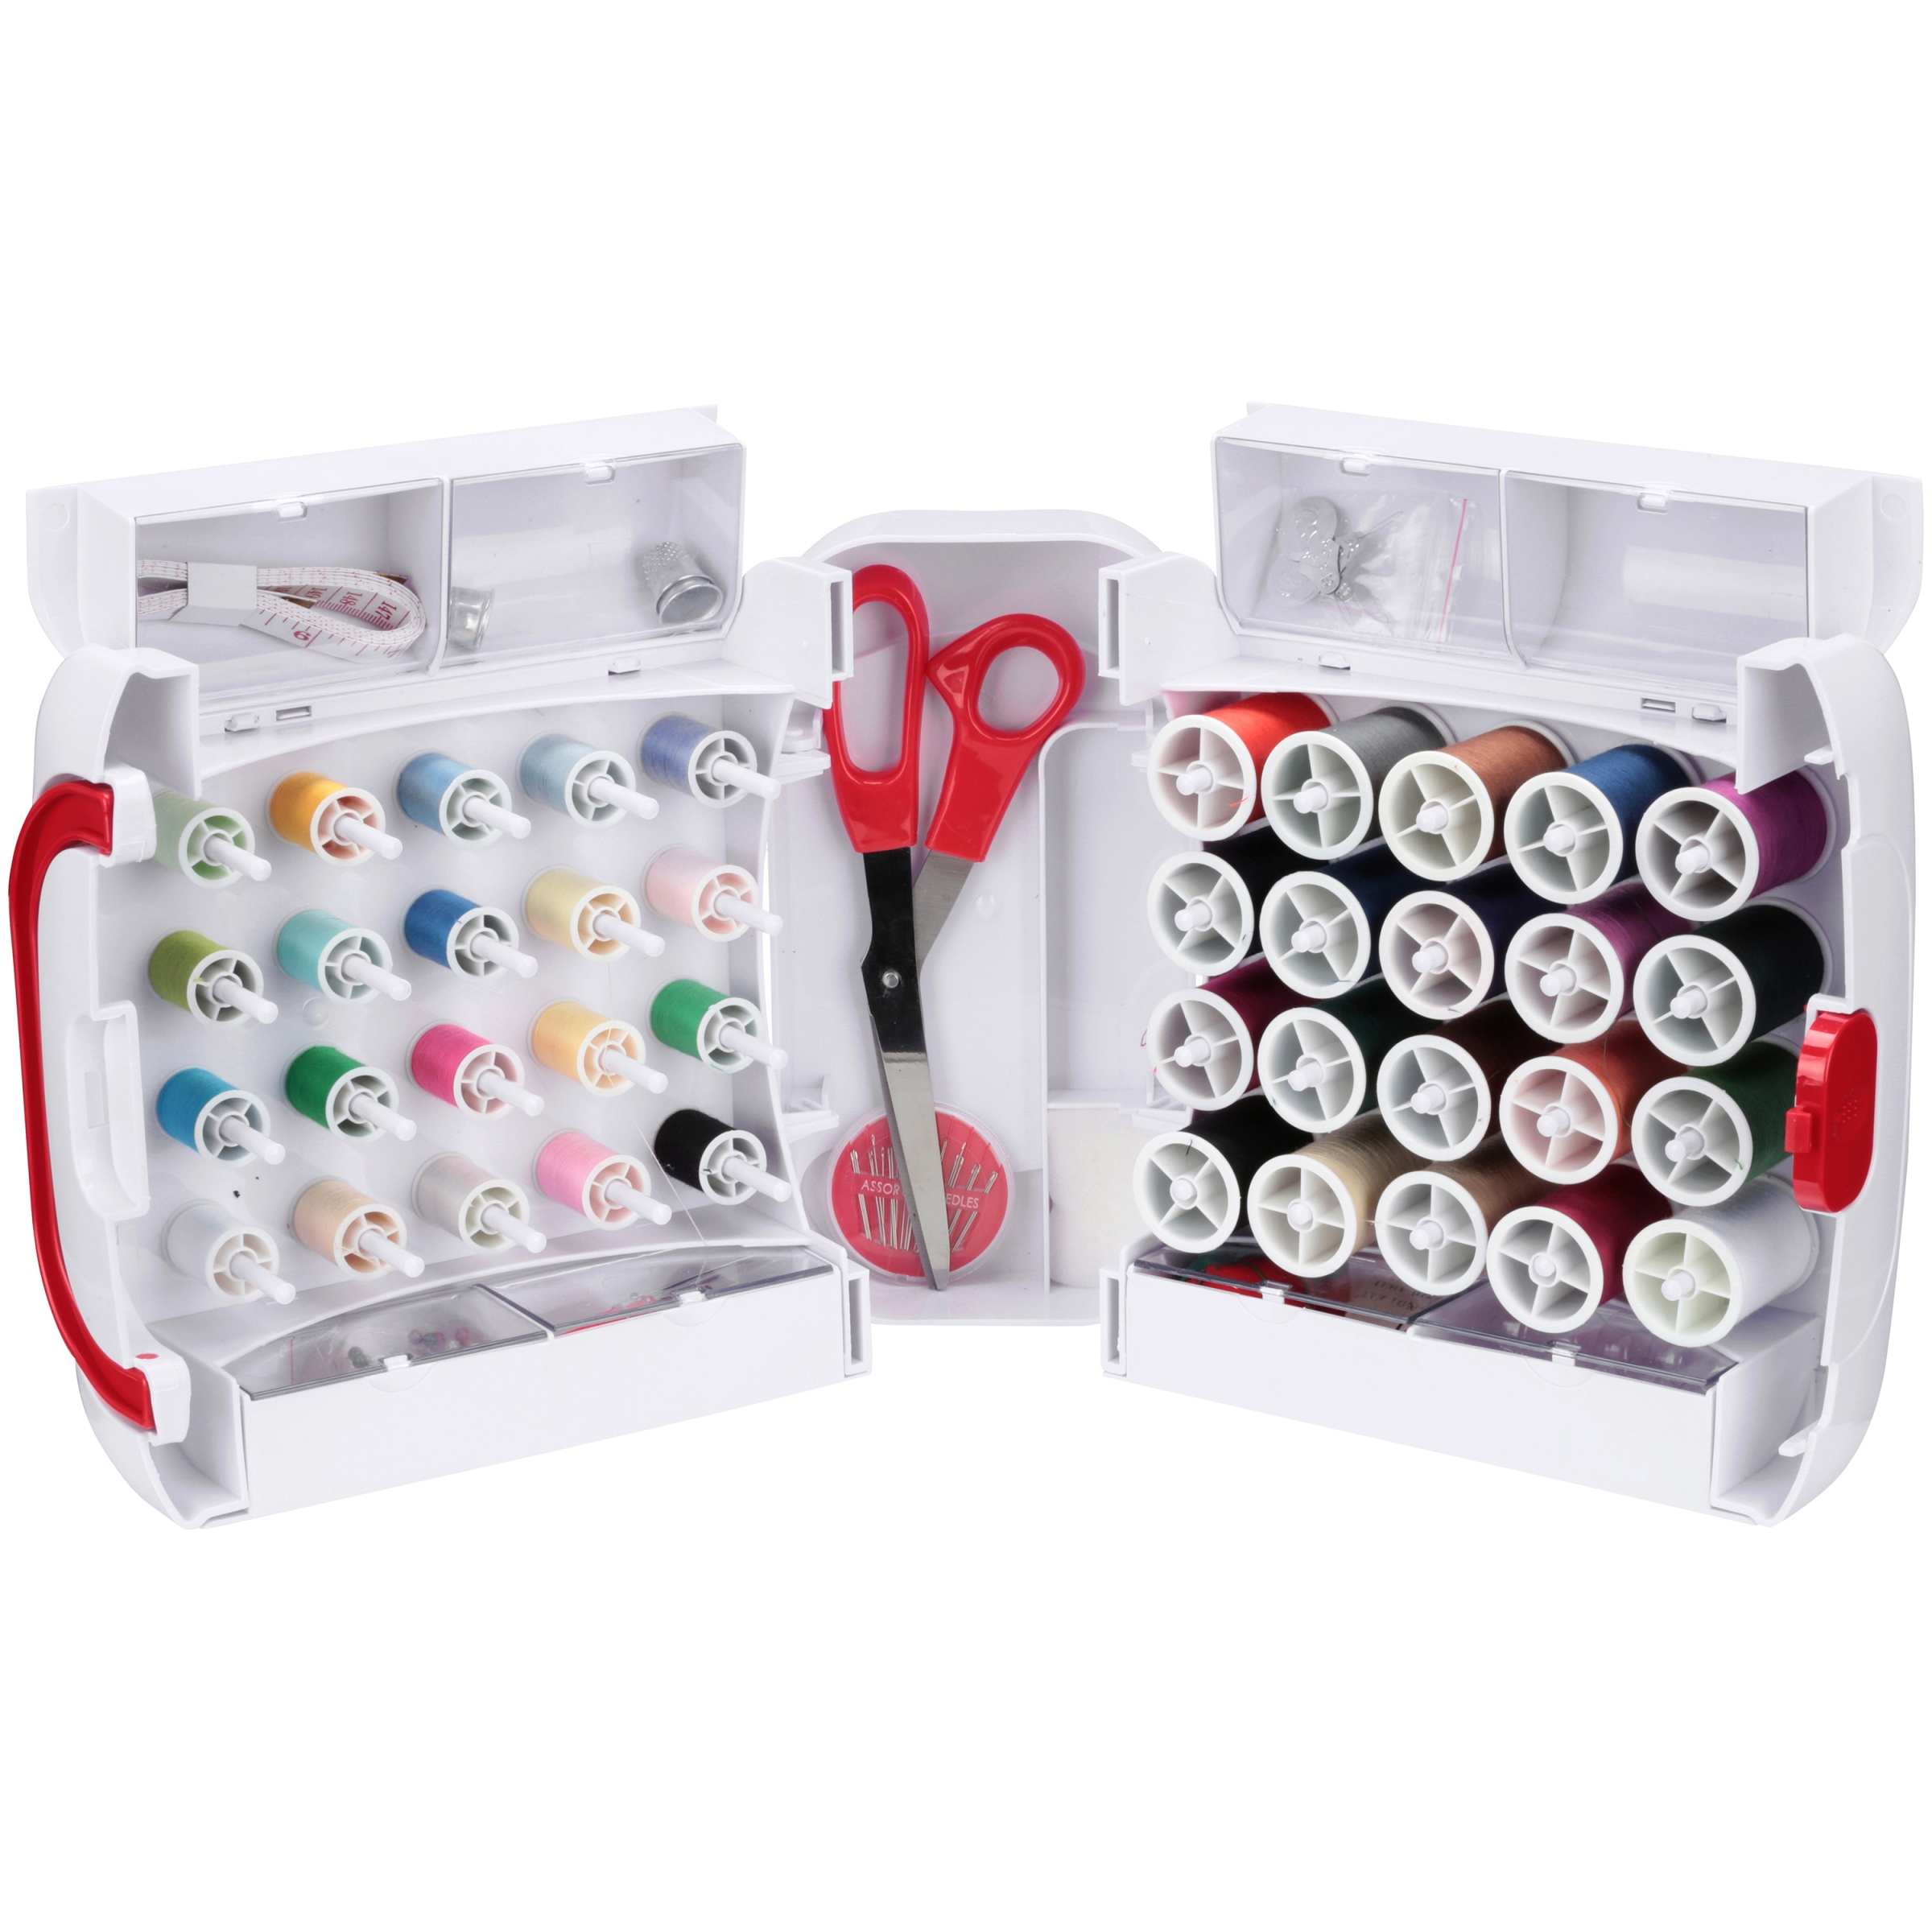 Singer® 166 Sew Essentials™ Sewing Kit Storage System 166 pc Box